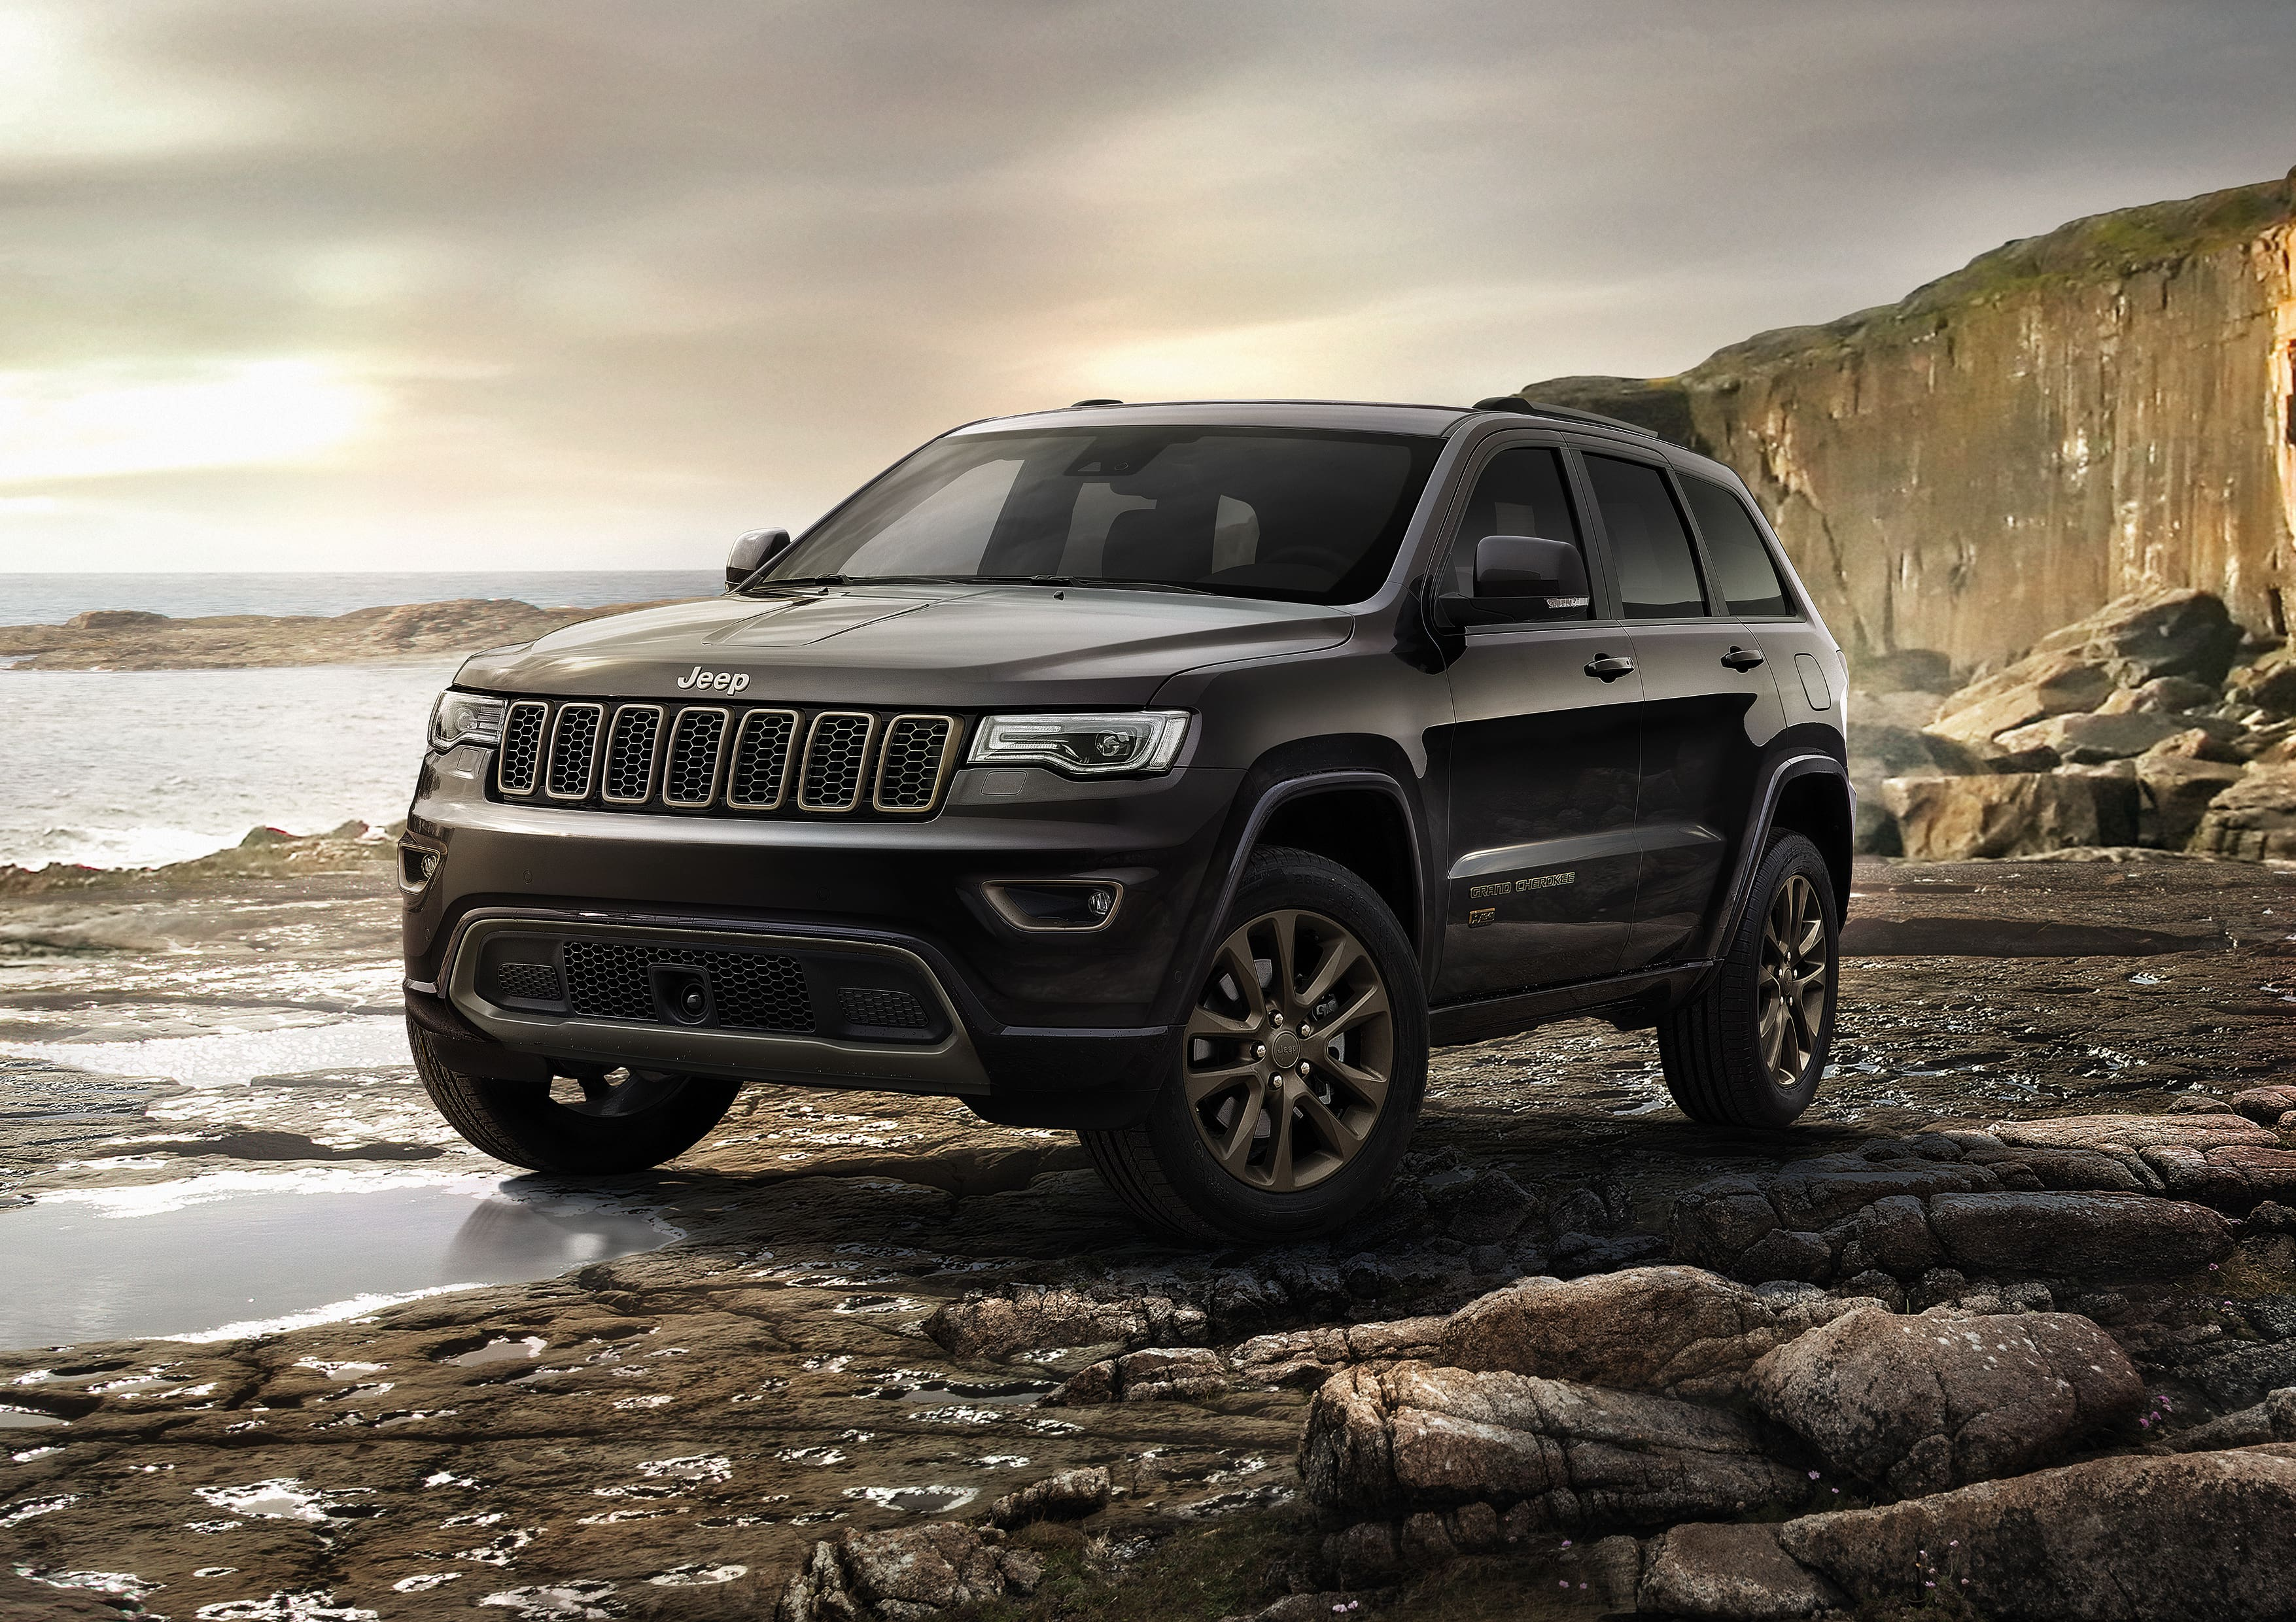 Jeep Compass Longitude Petrol variant now available in India at Rs 18.90 lakhs